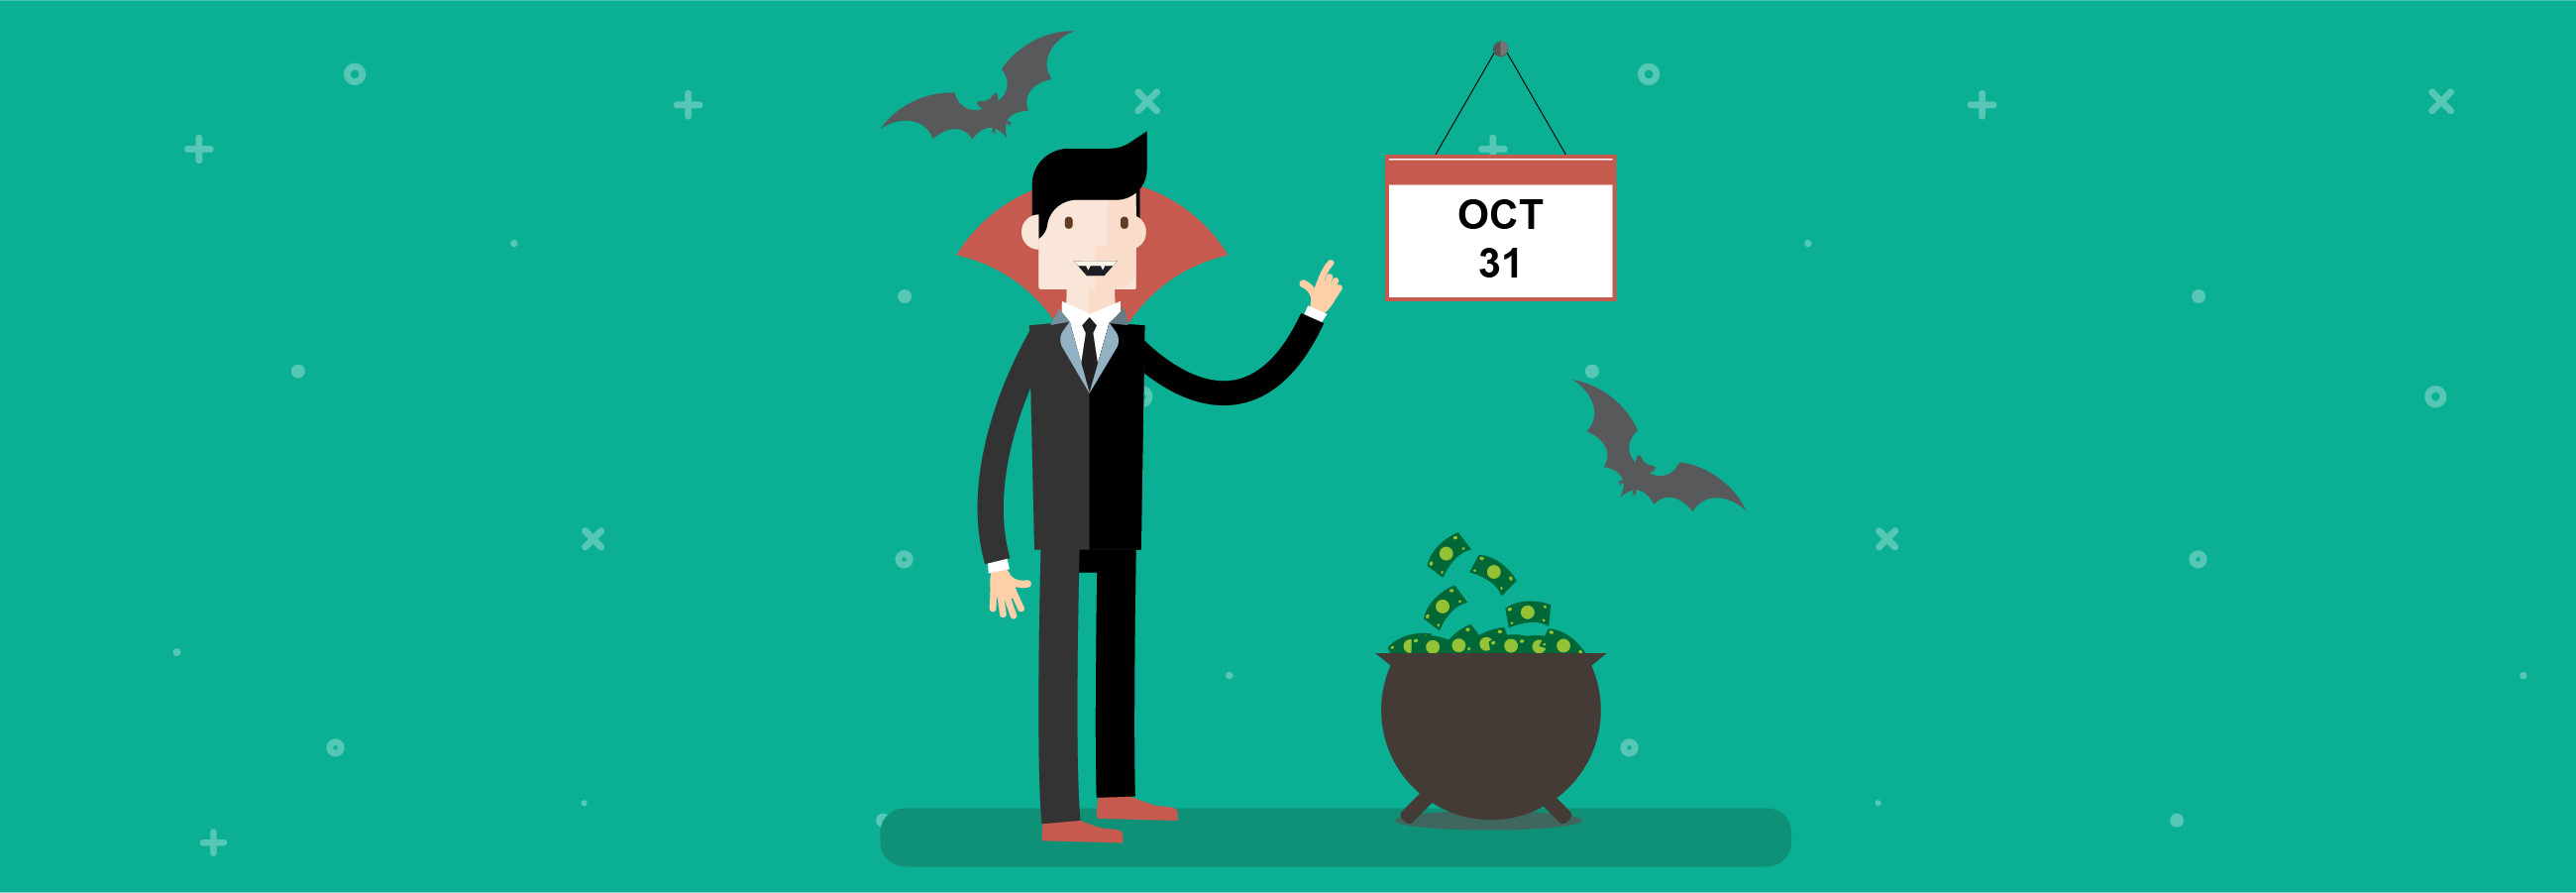 Why October spooks investors